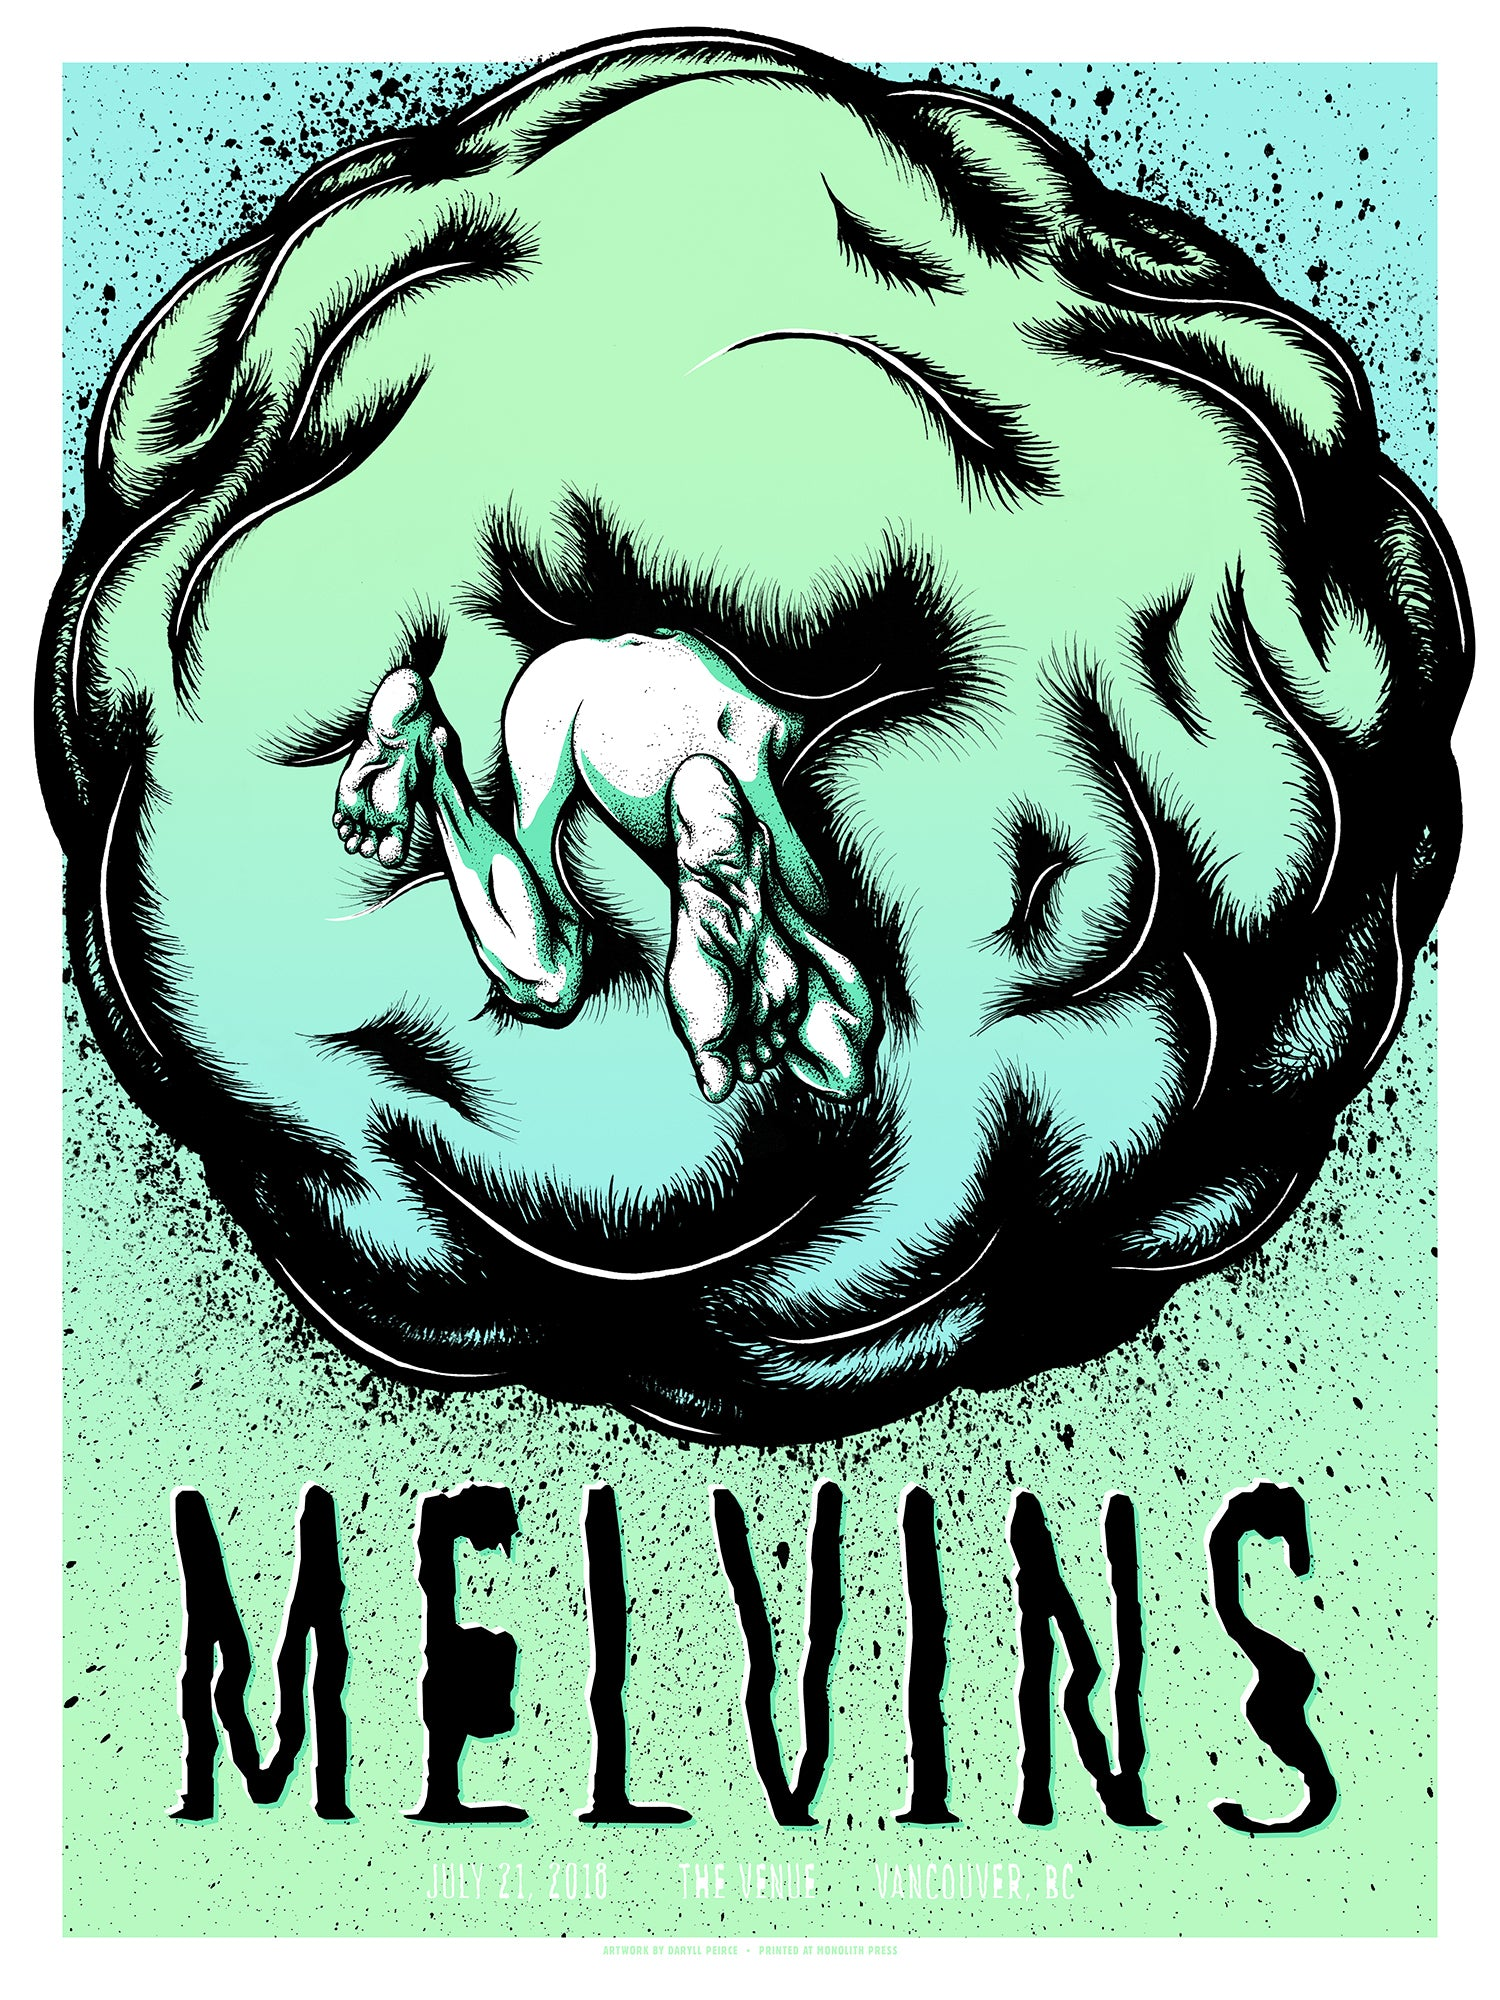 MELVINS - Vancouver 2018 by Daryll Peirce